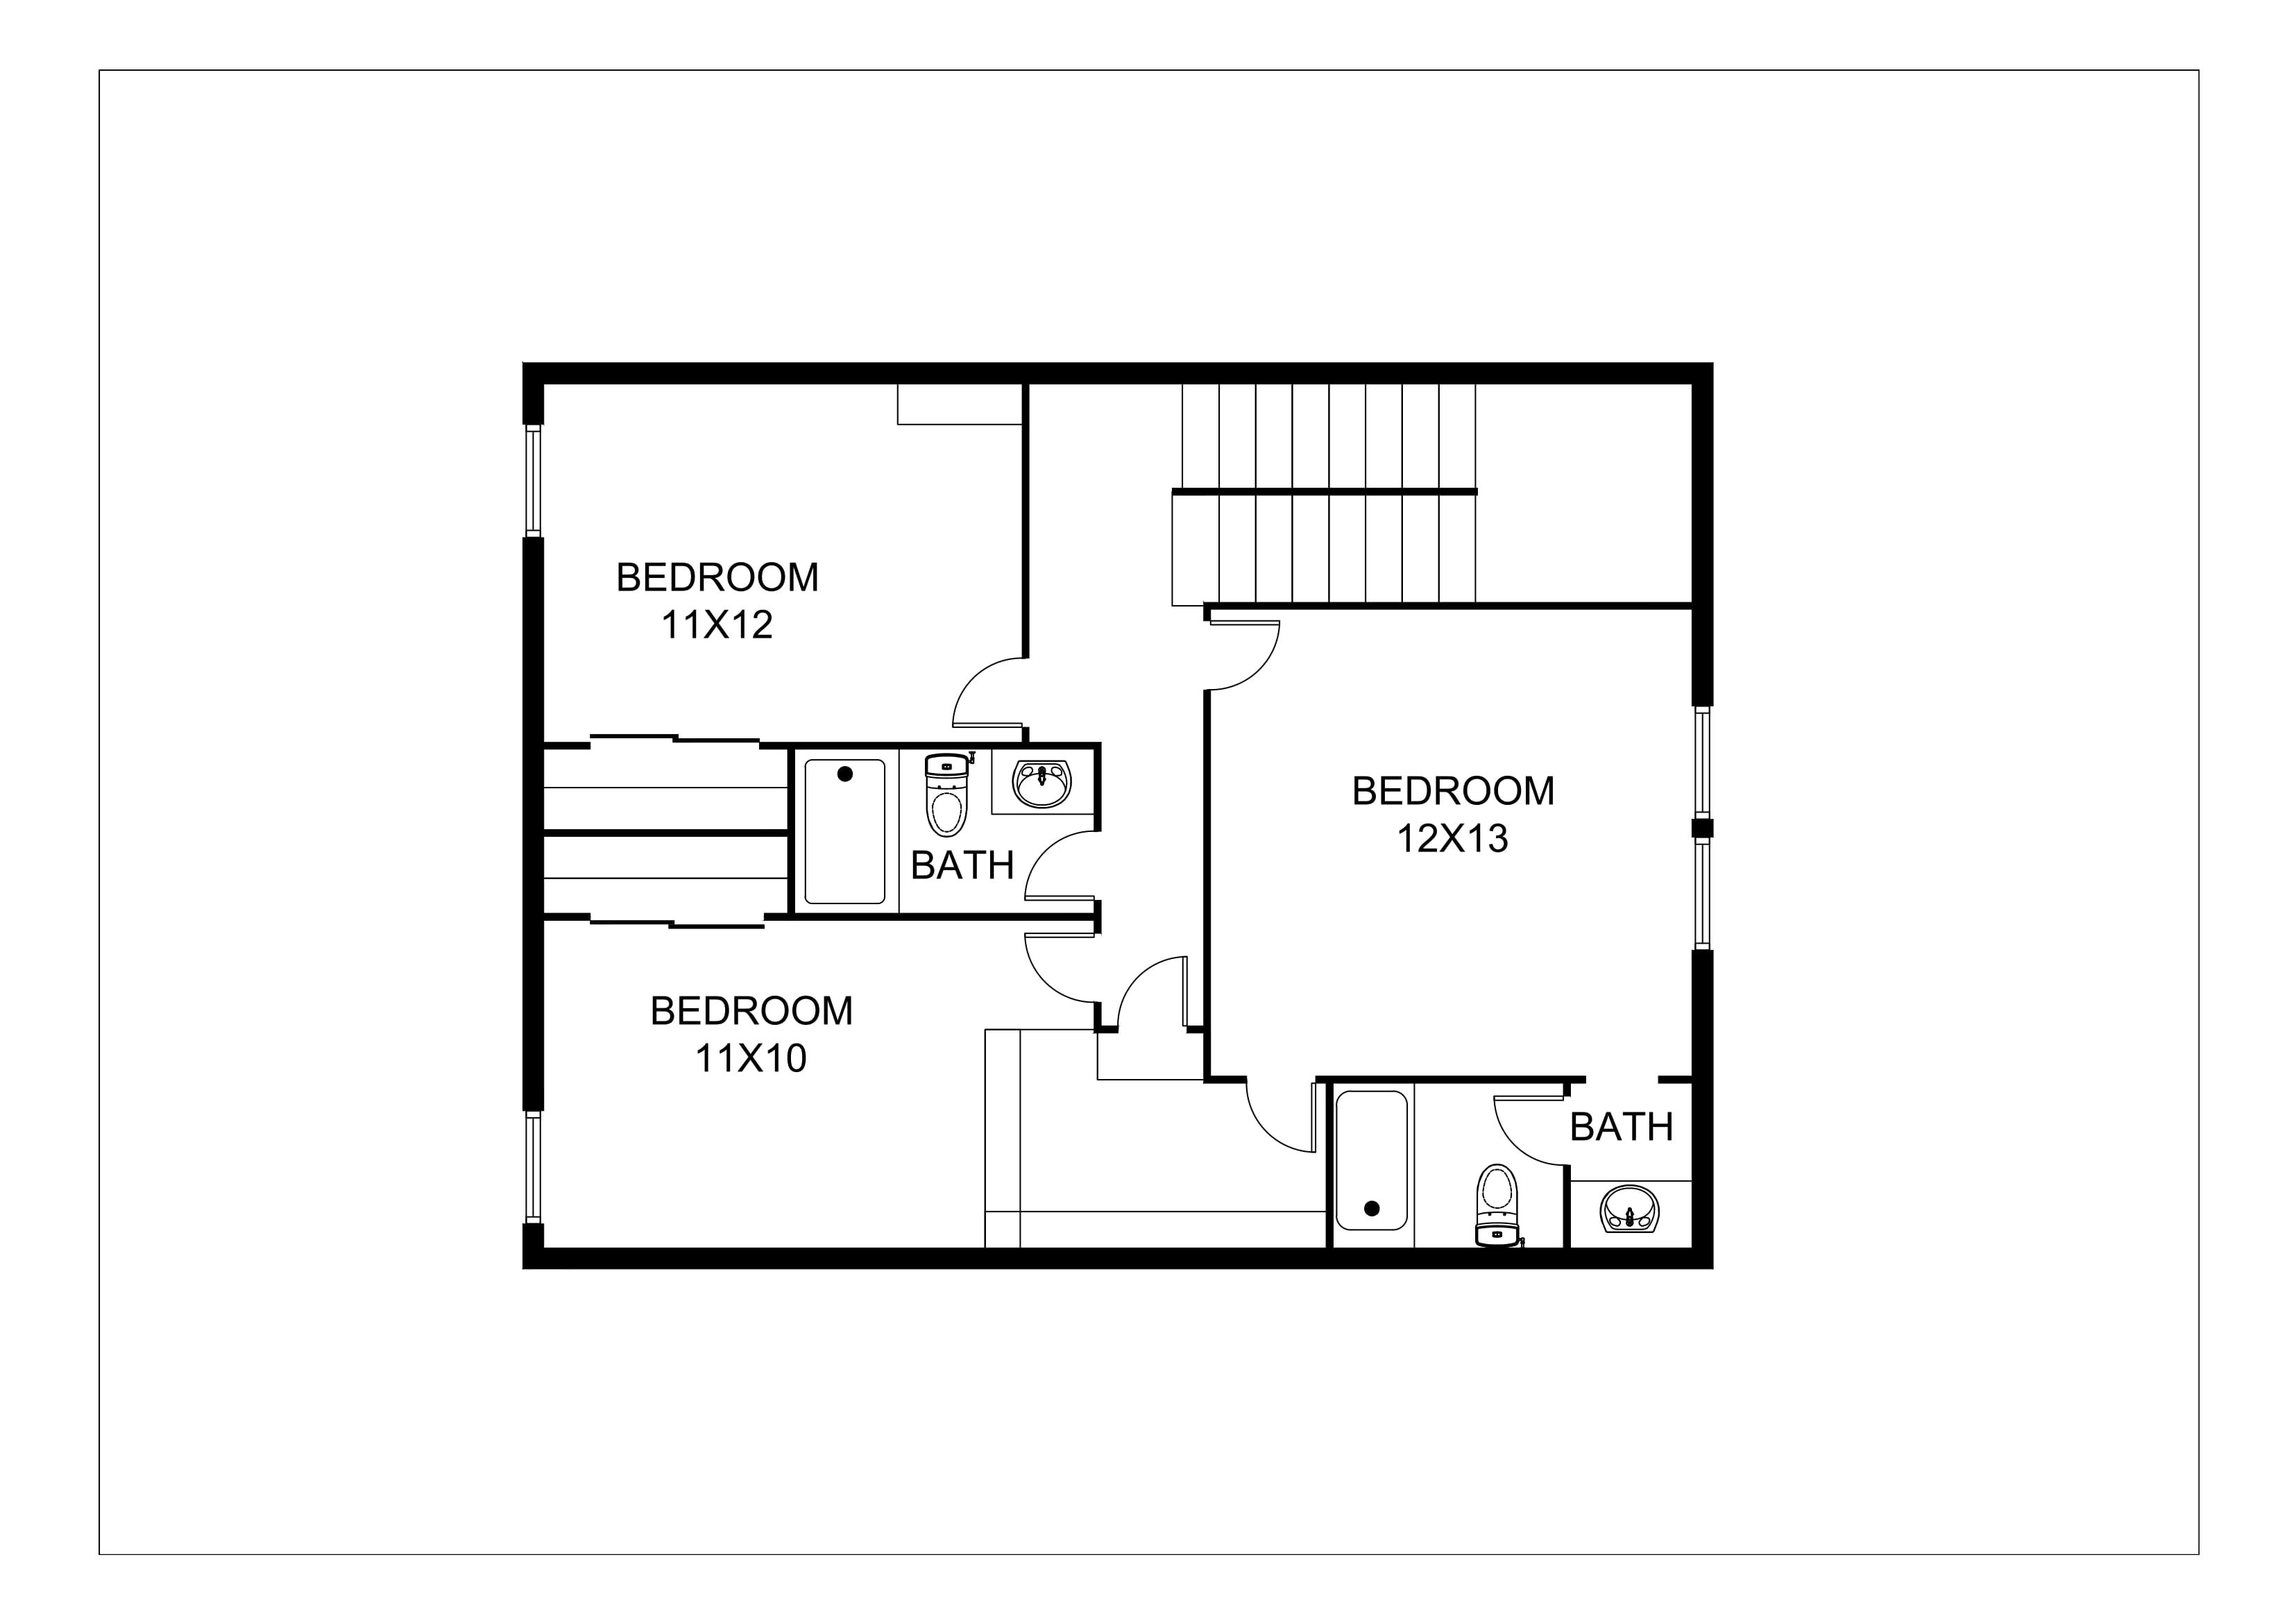 2d floor plan design rendering samples examples Bad floor plans examples